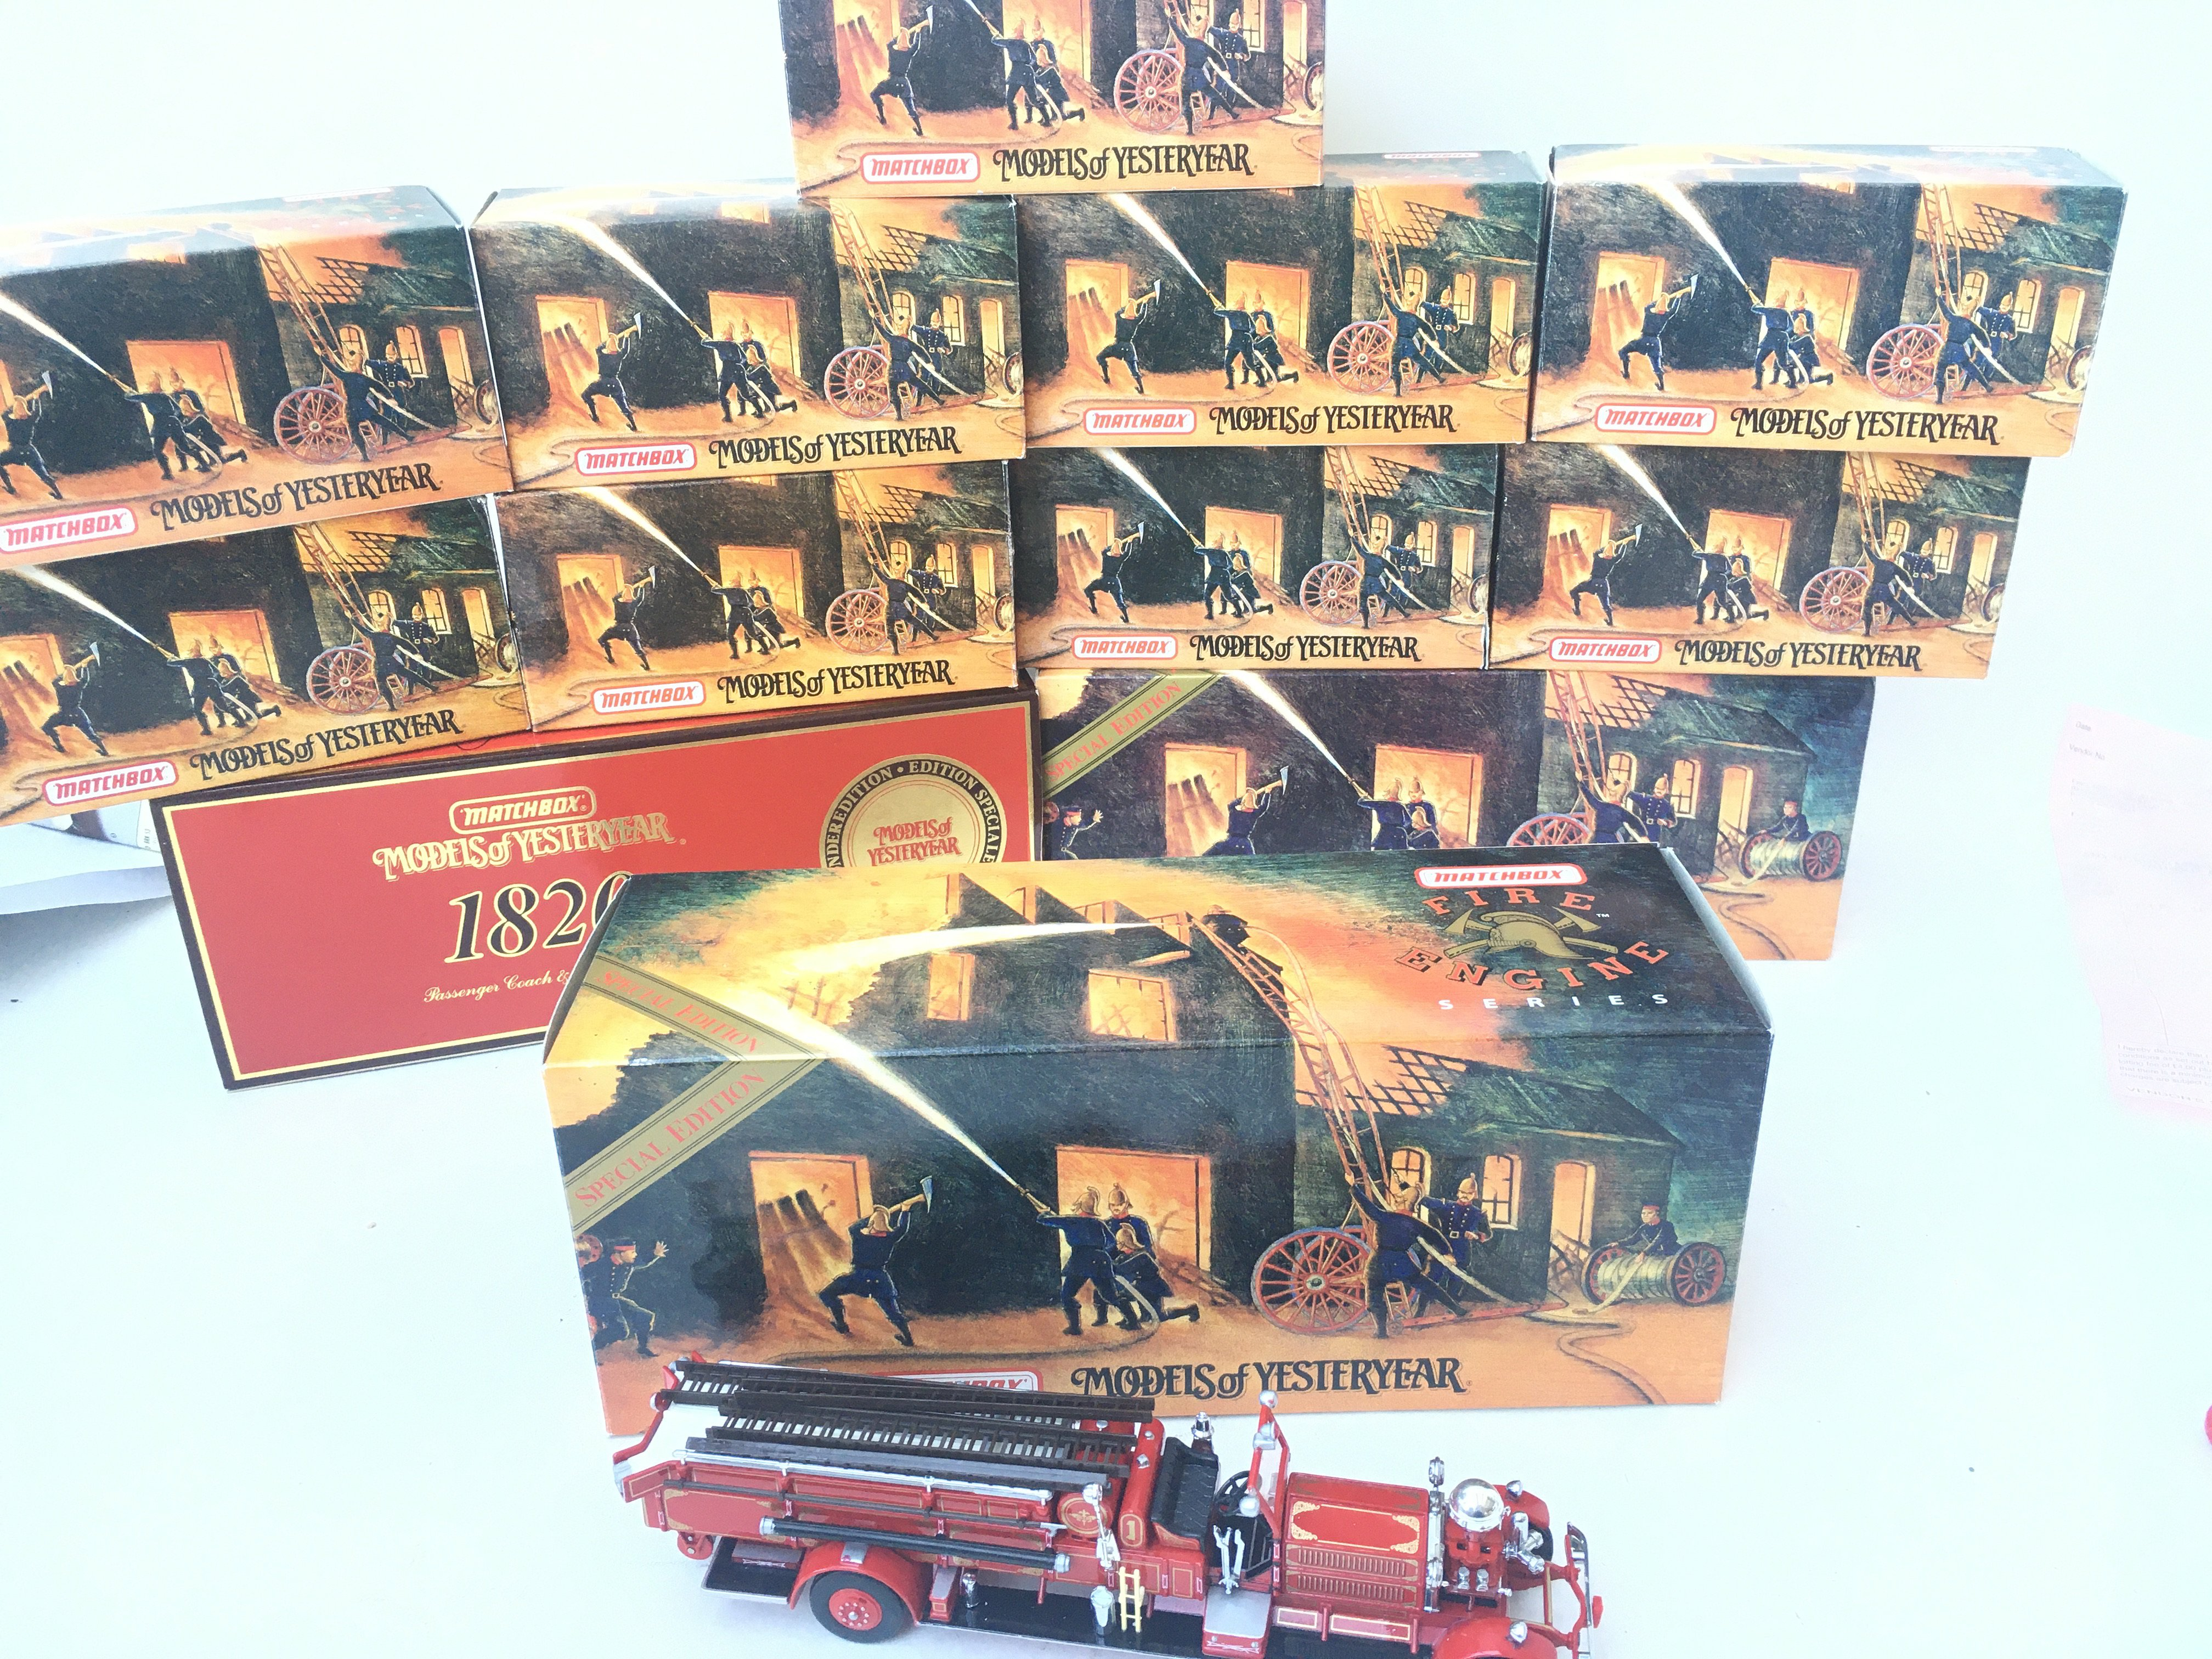 A Collection of Matchbox Models of Yesteryear mostly the Fire Engine Series. All Boxed.